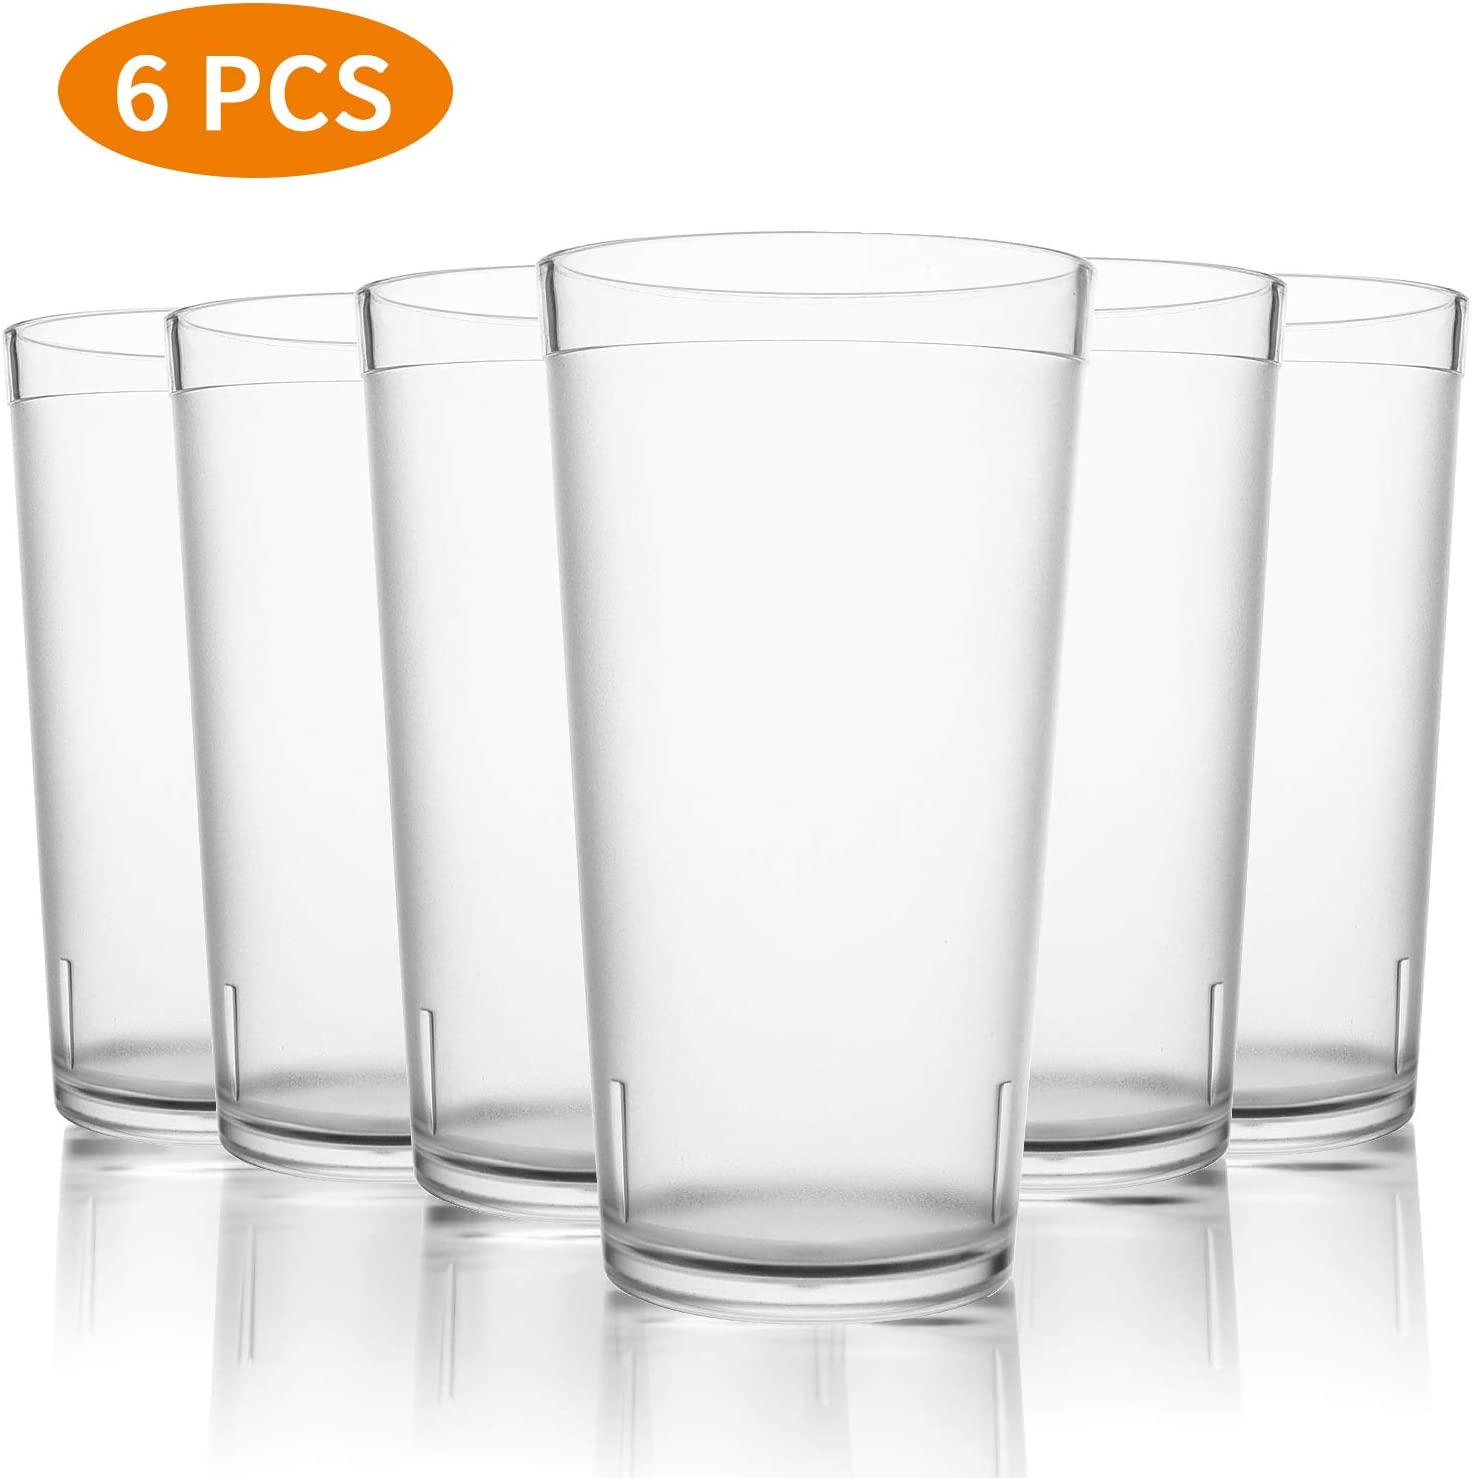 PEMOTech Reusable Plastic Drinking Glasses Set of 6,16 oz Bistro Drinking Cups Plastic,Dishwasher Safe BPA Free Stackable Plastic Cups,Larger Unbreakable Shatterproof Frosted Plastic Tumbler Cup